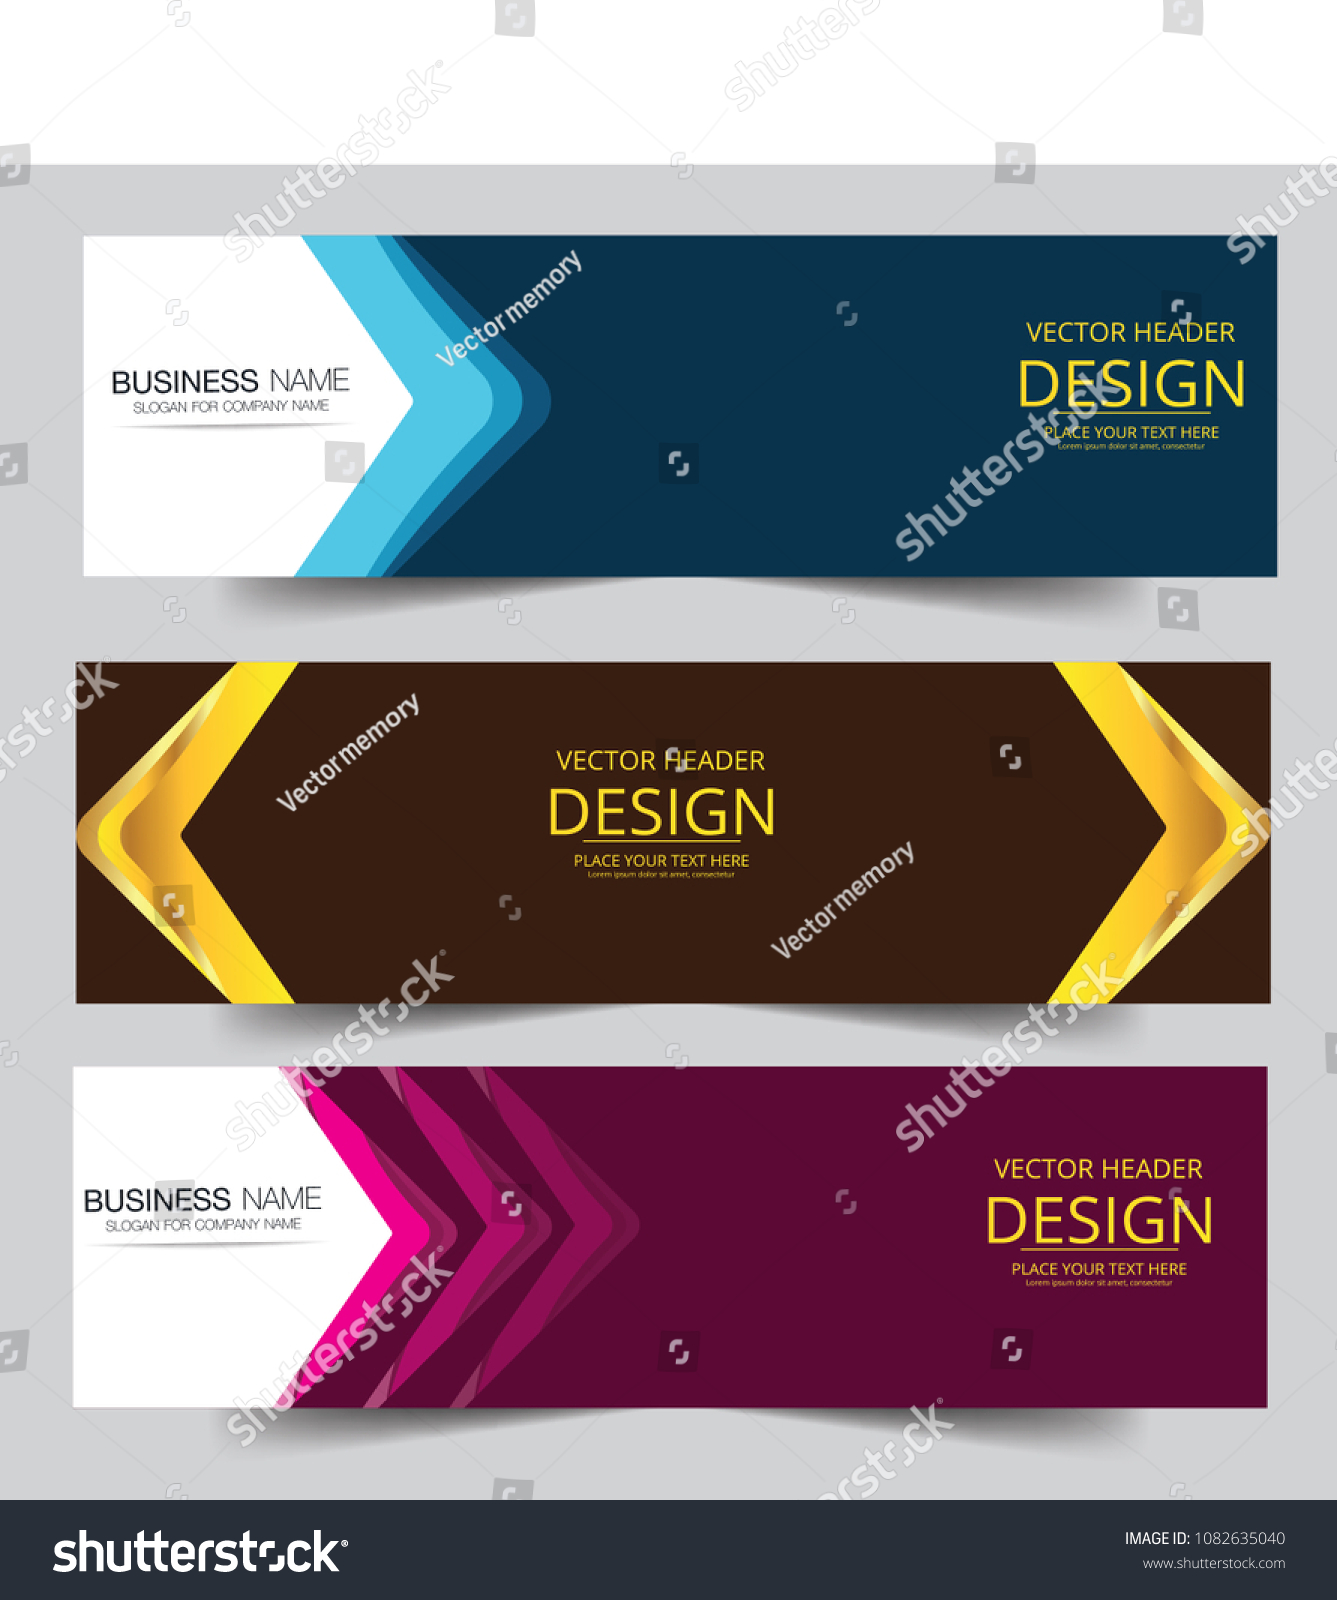 Background Banner Banners Leafy Banners